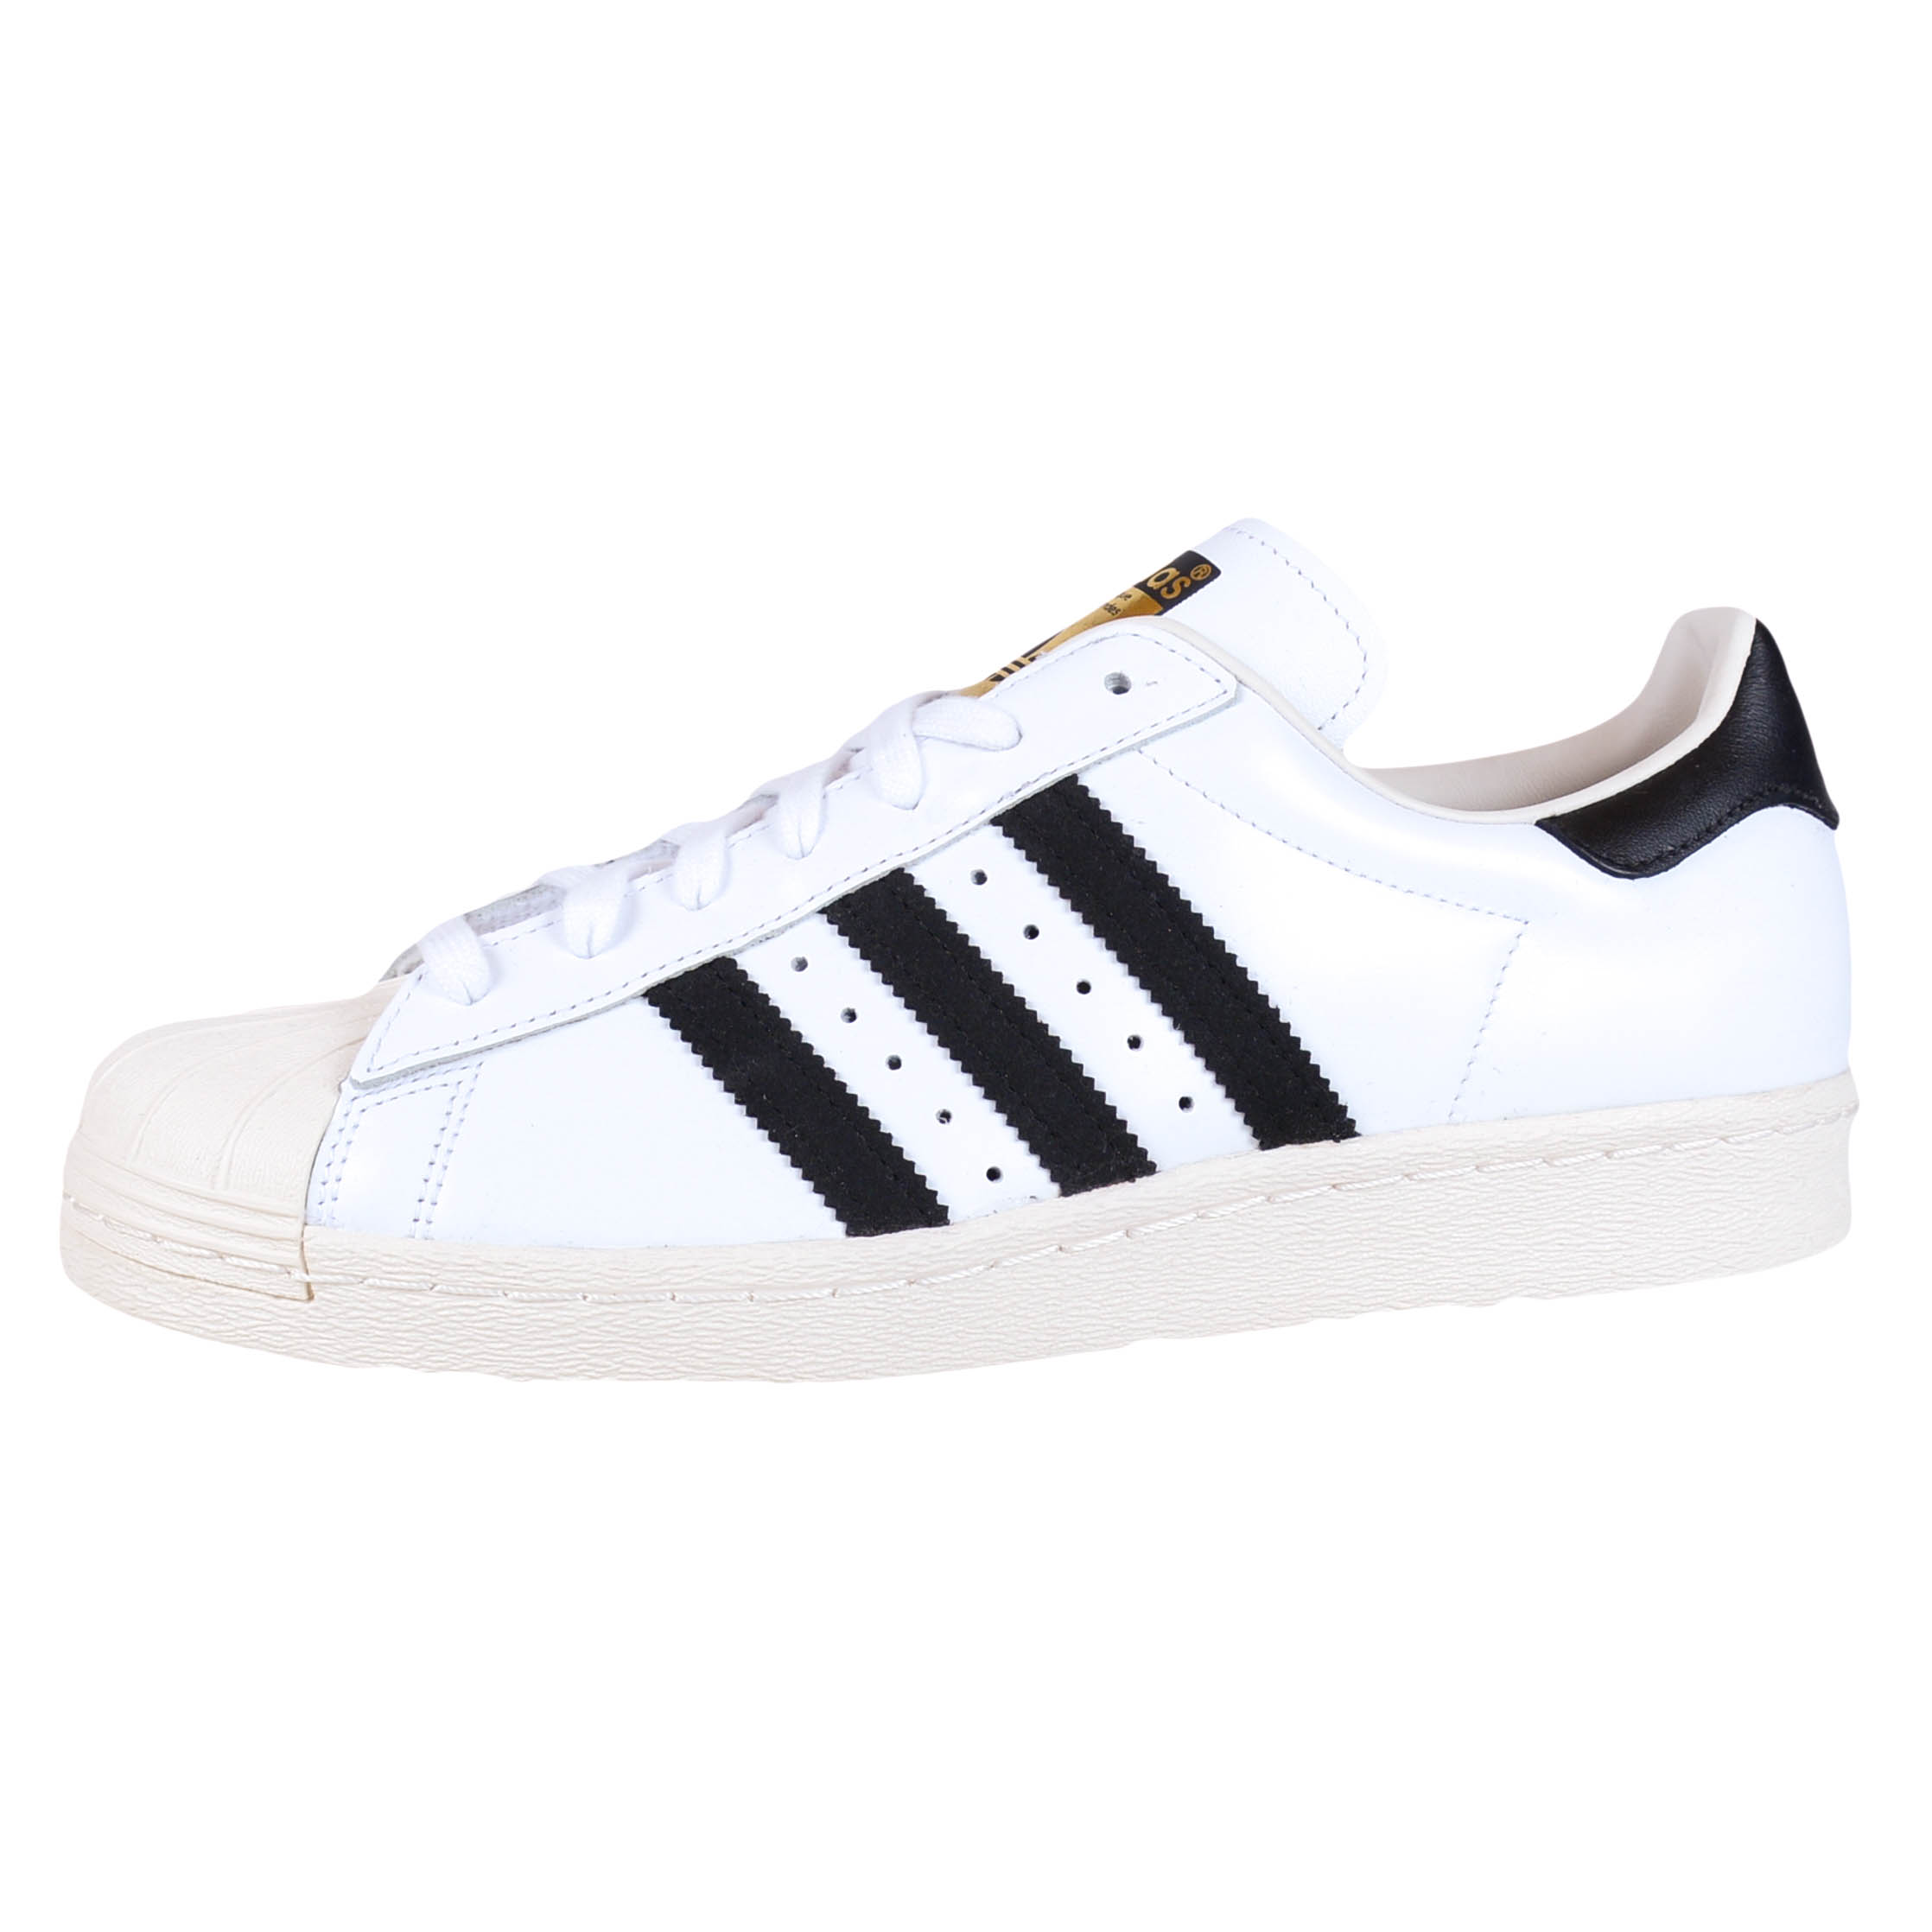 adidas superstar 80s retro basketball shoes white black